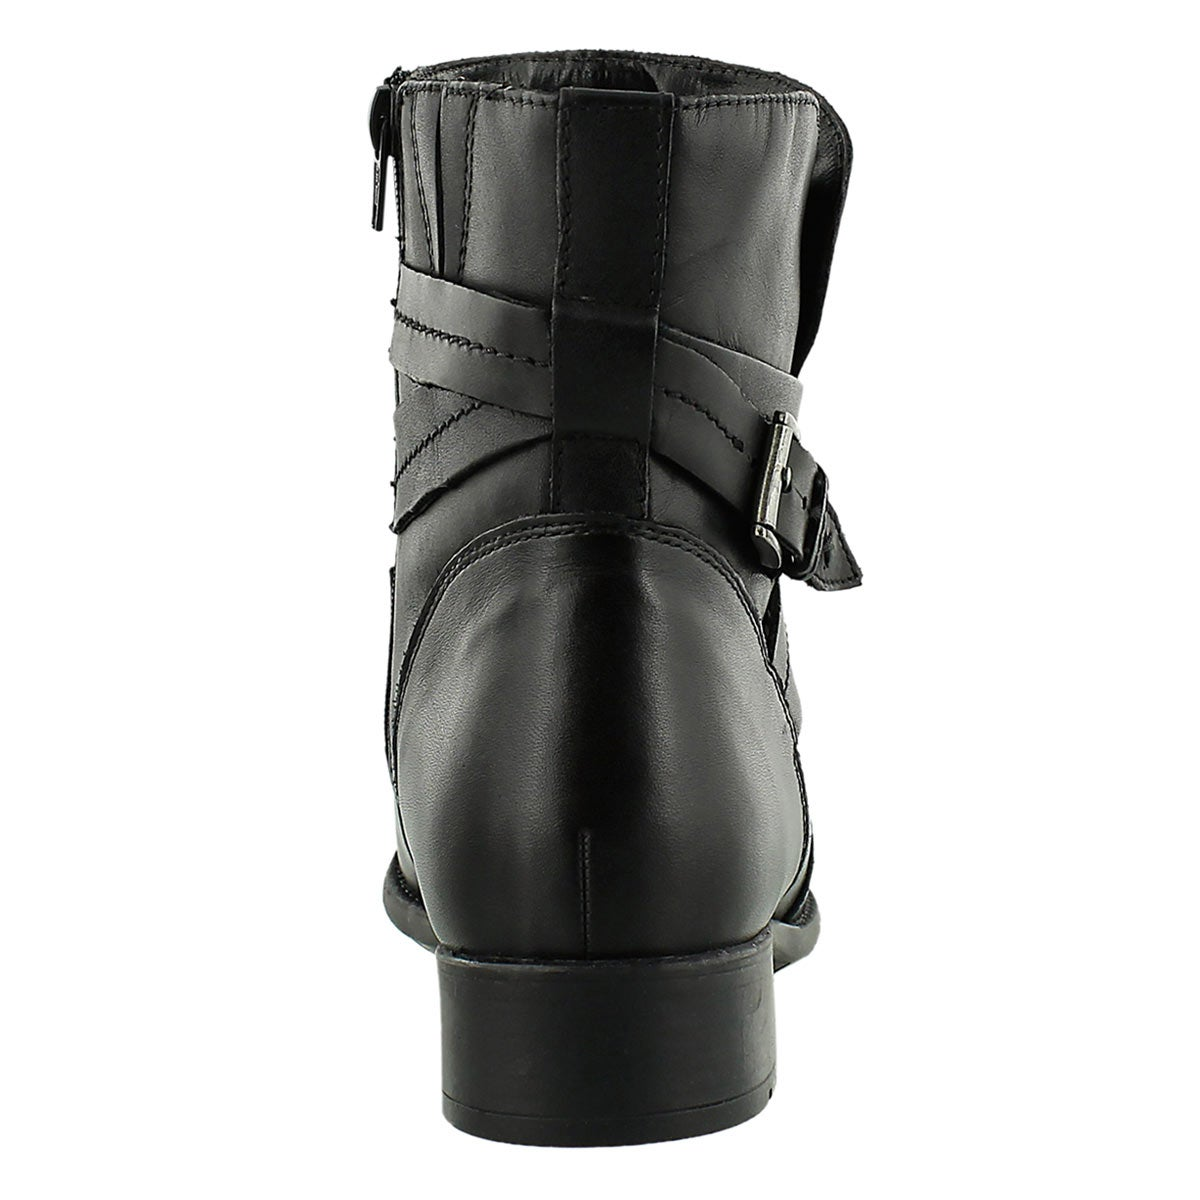 Lds Plaza Square black ankle boot